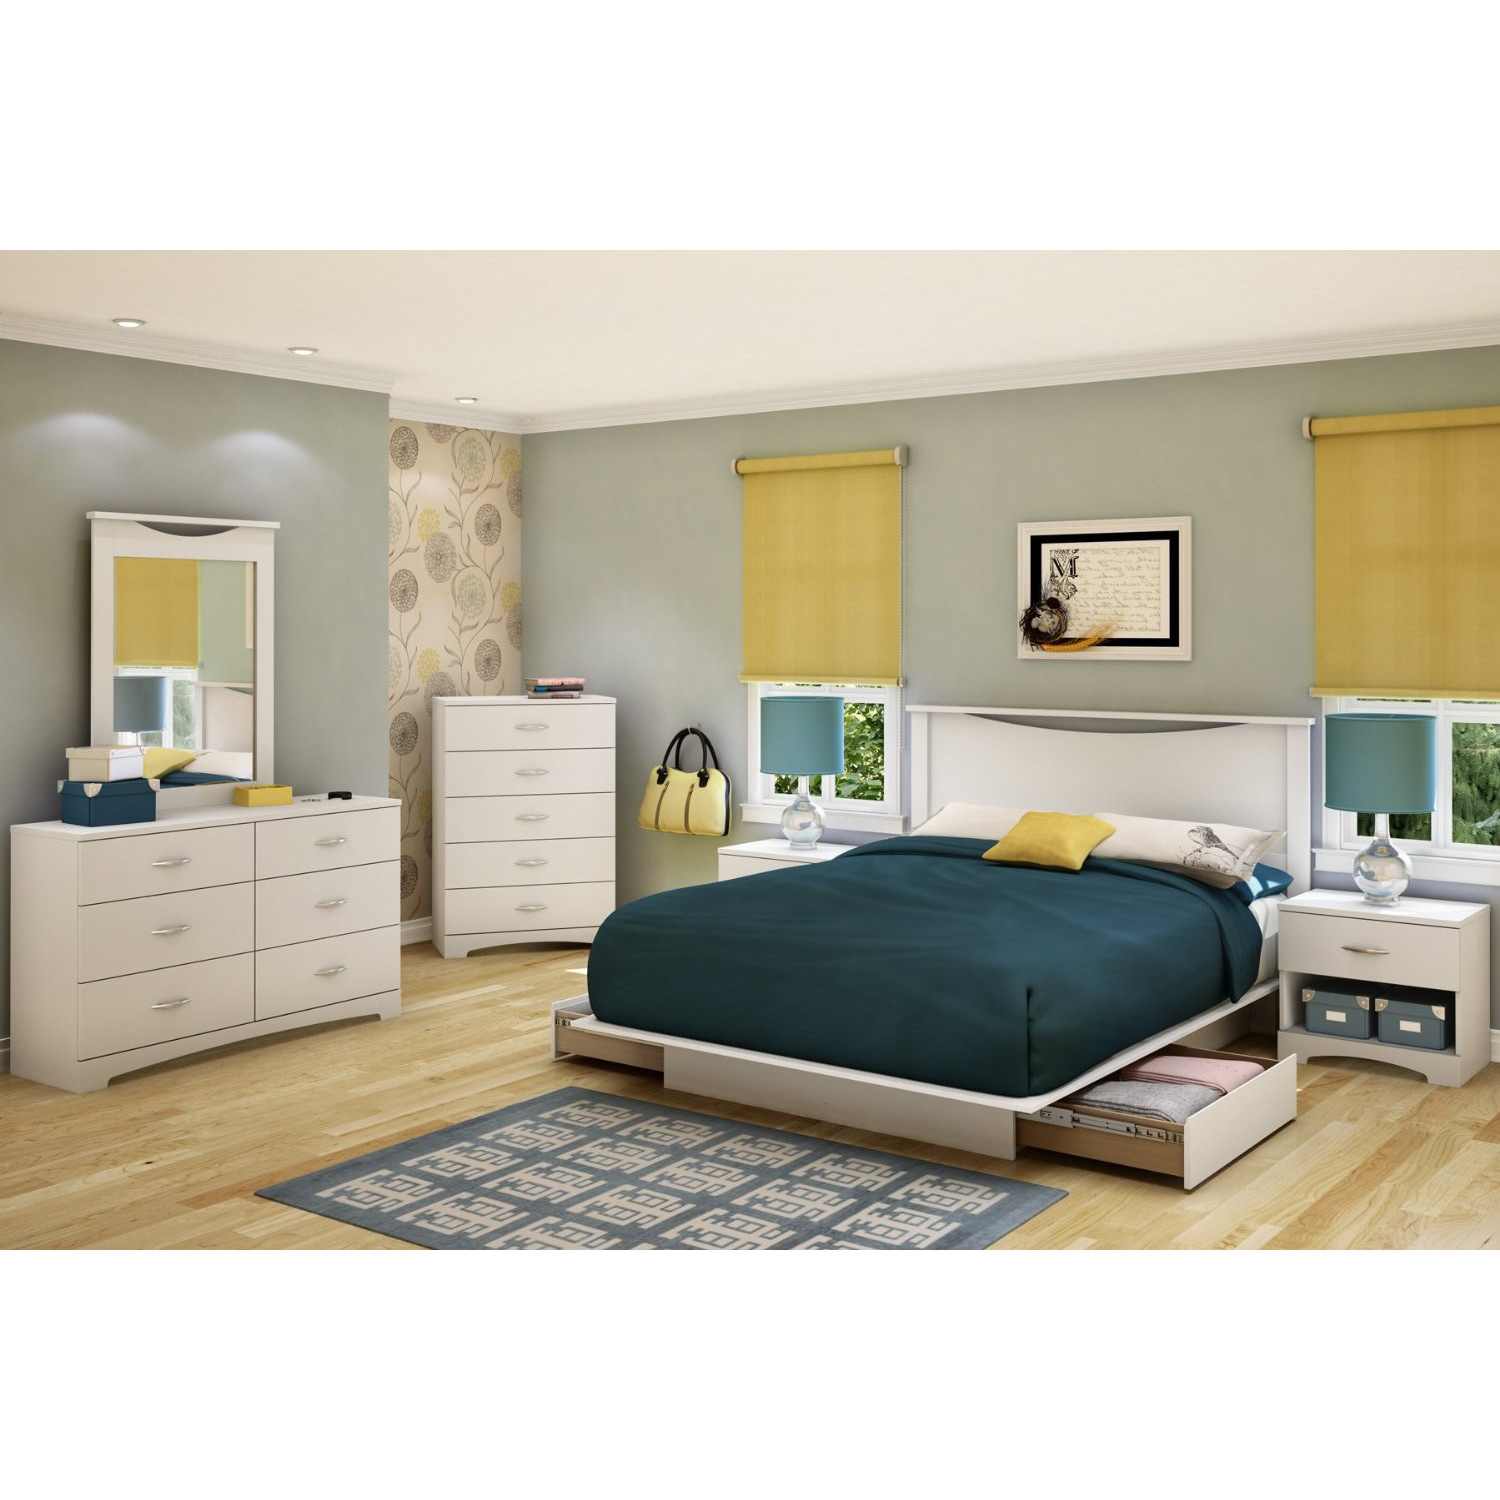 King size bed frames with storage - King Bed Frame Wood Maboul Weathered Wood Panel Bed View Full Size Retail Price